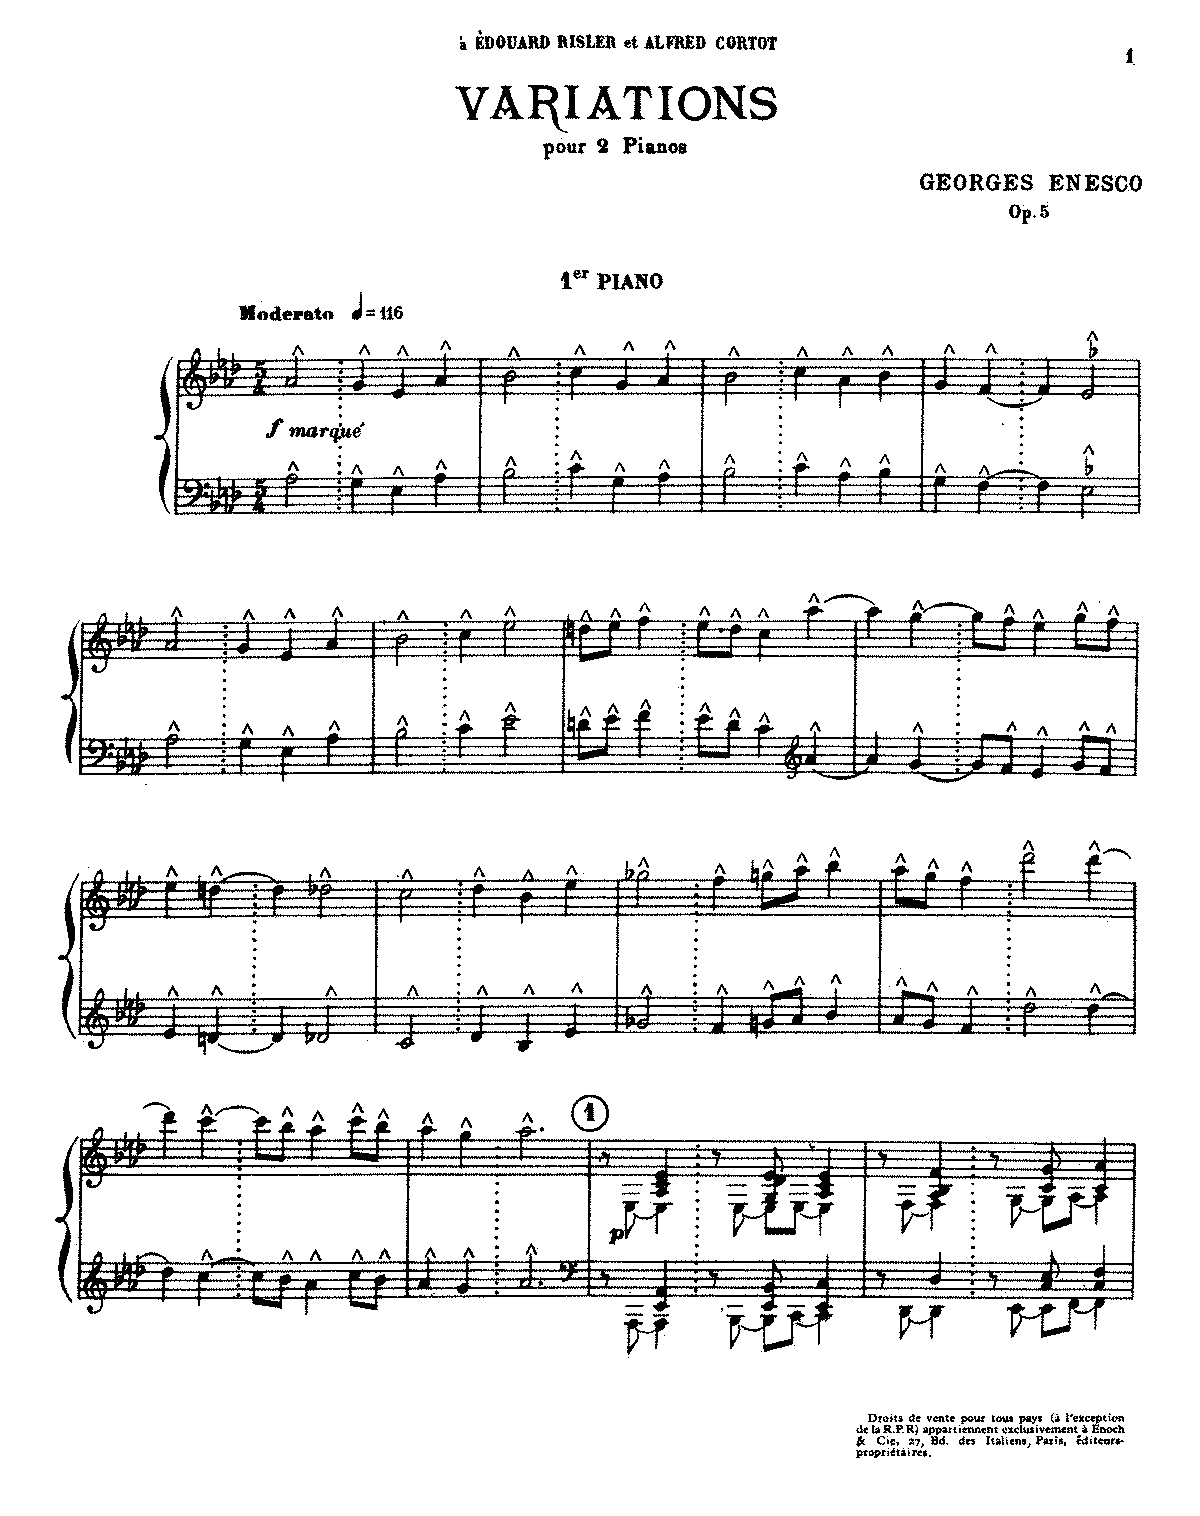 PMLP187466-Enescu - Variations for 2 pianos, Op. 5.pdf